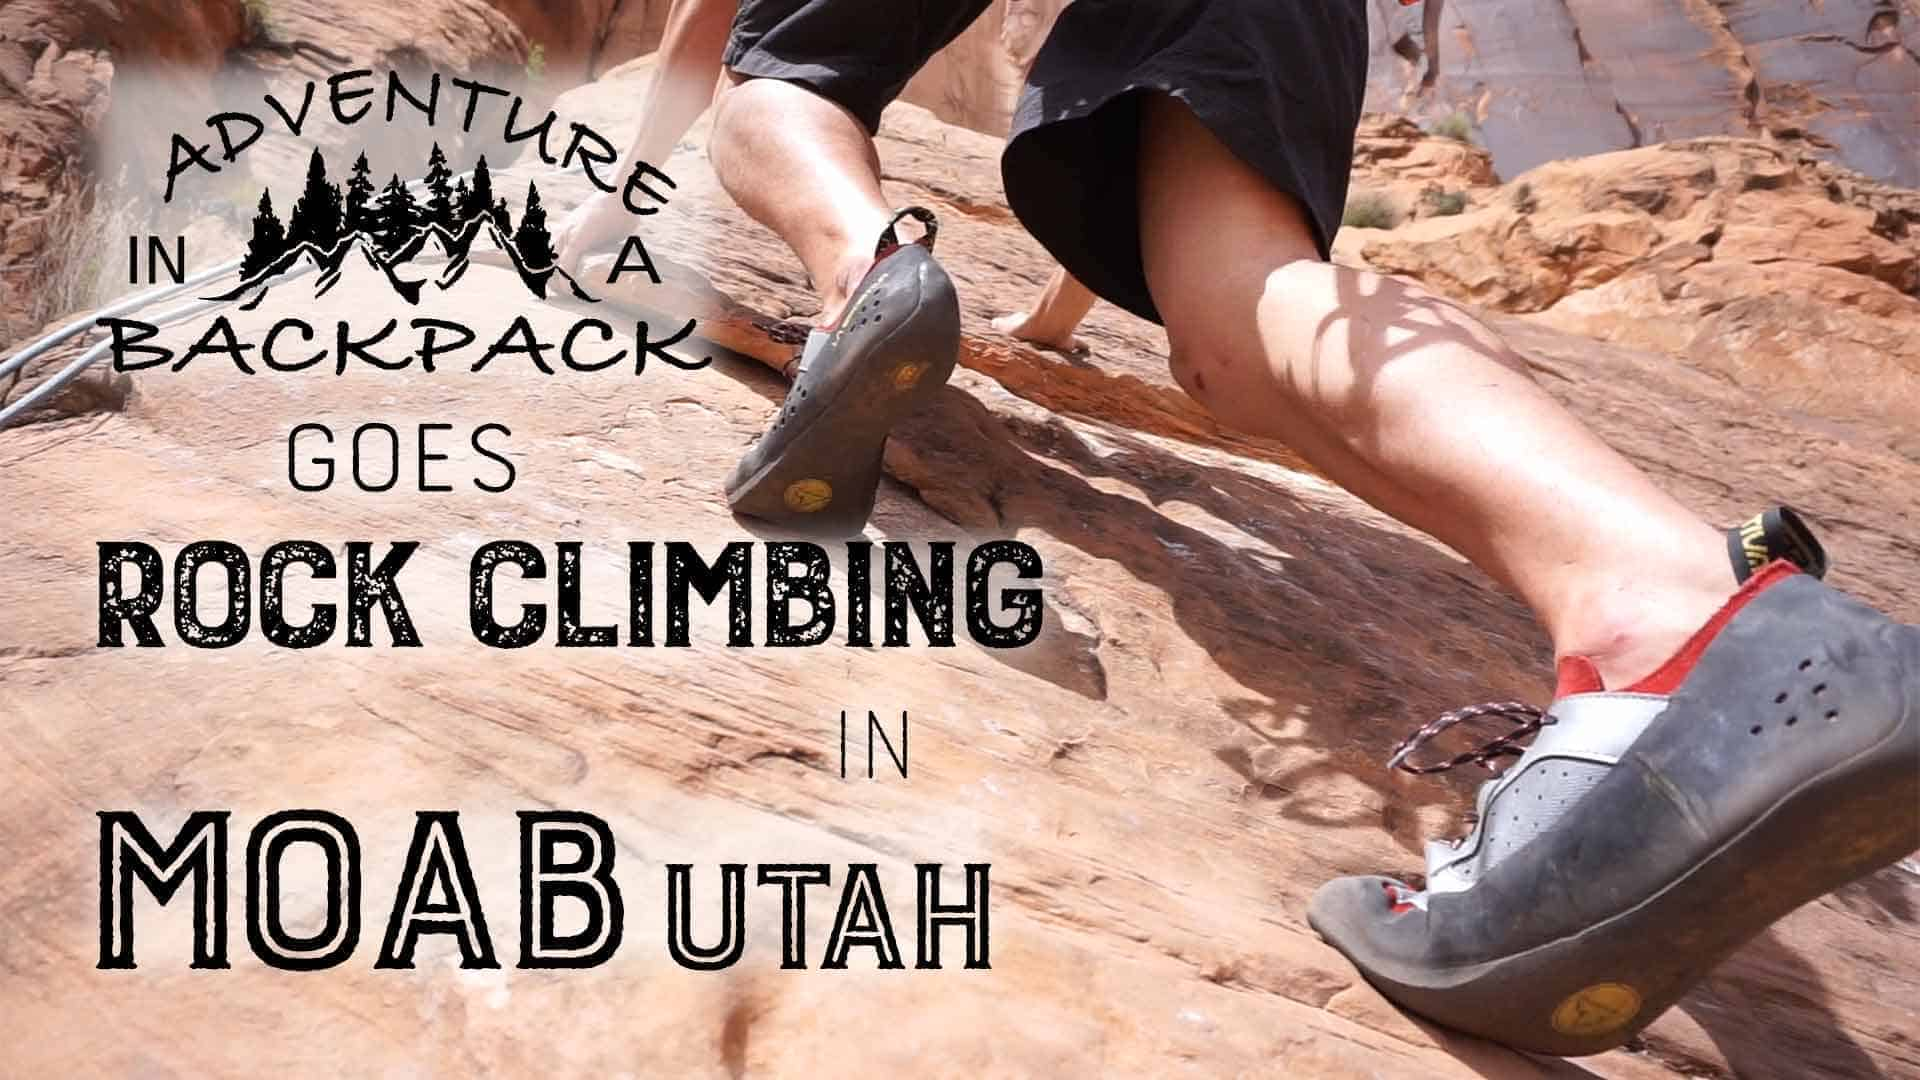 Rock Climbing Wall Street in Moab